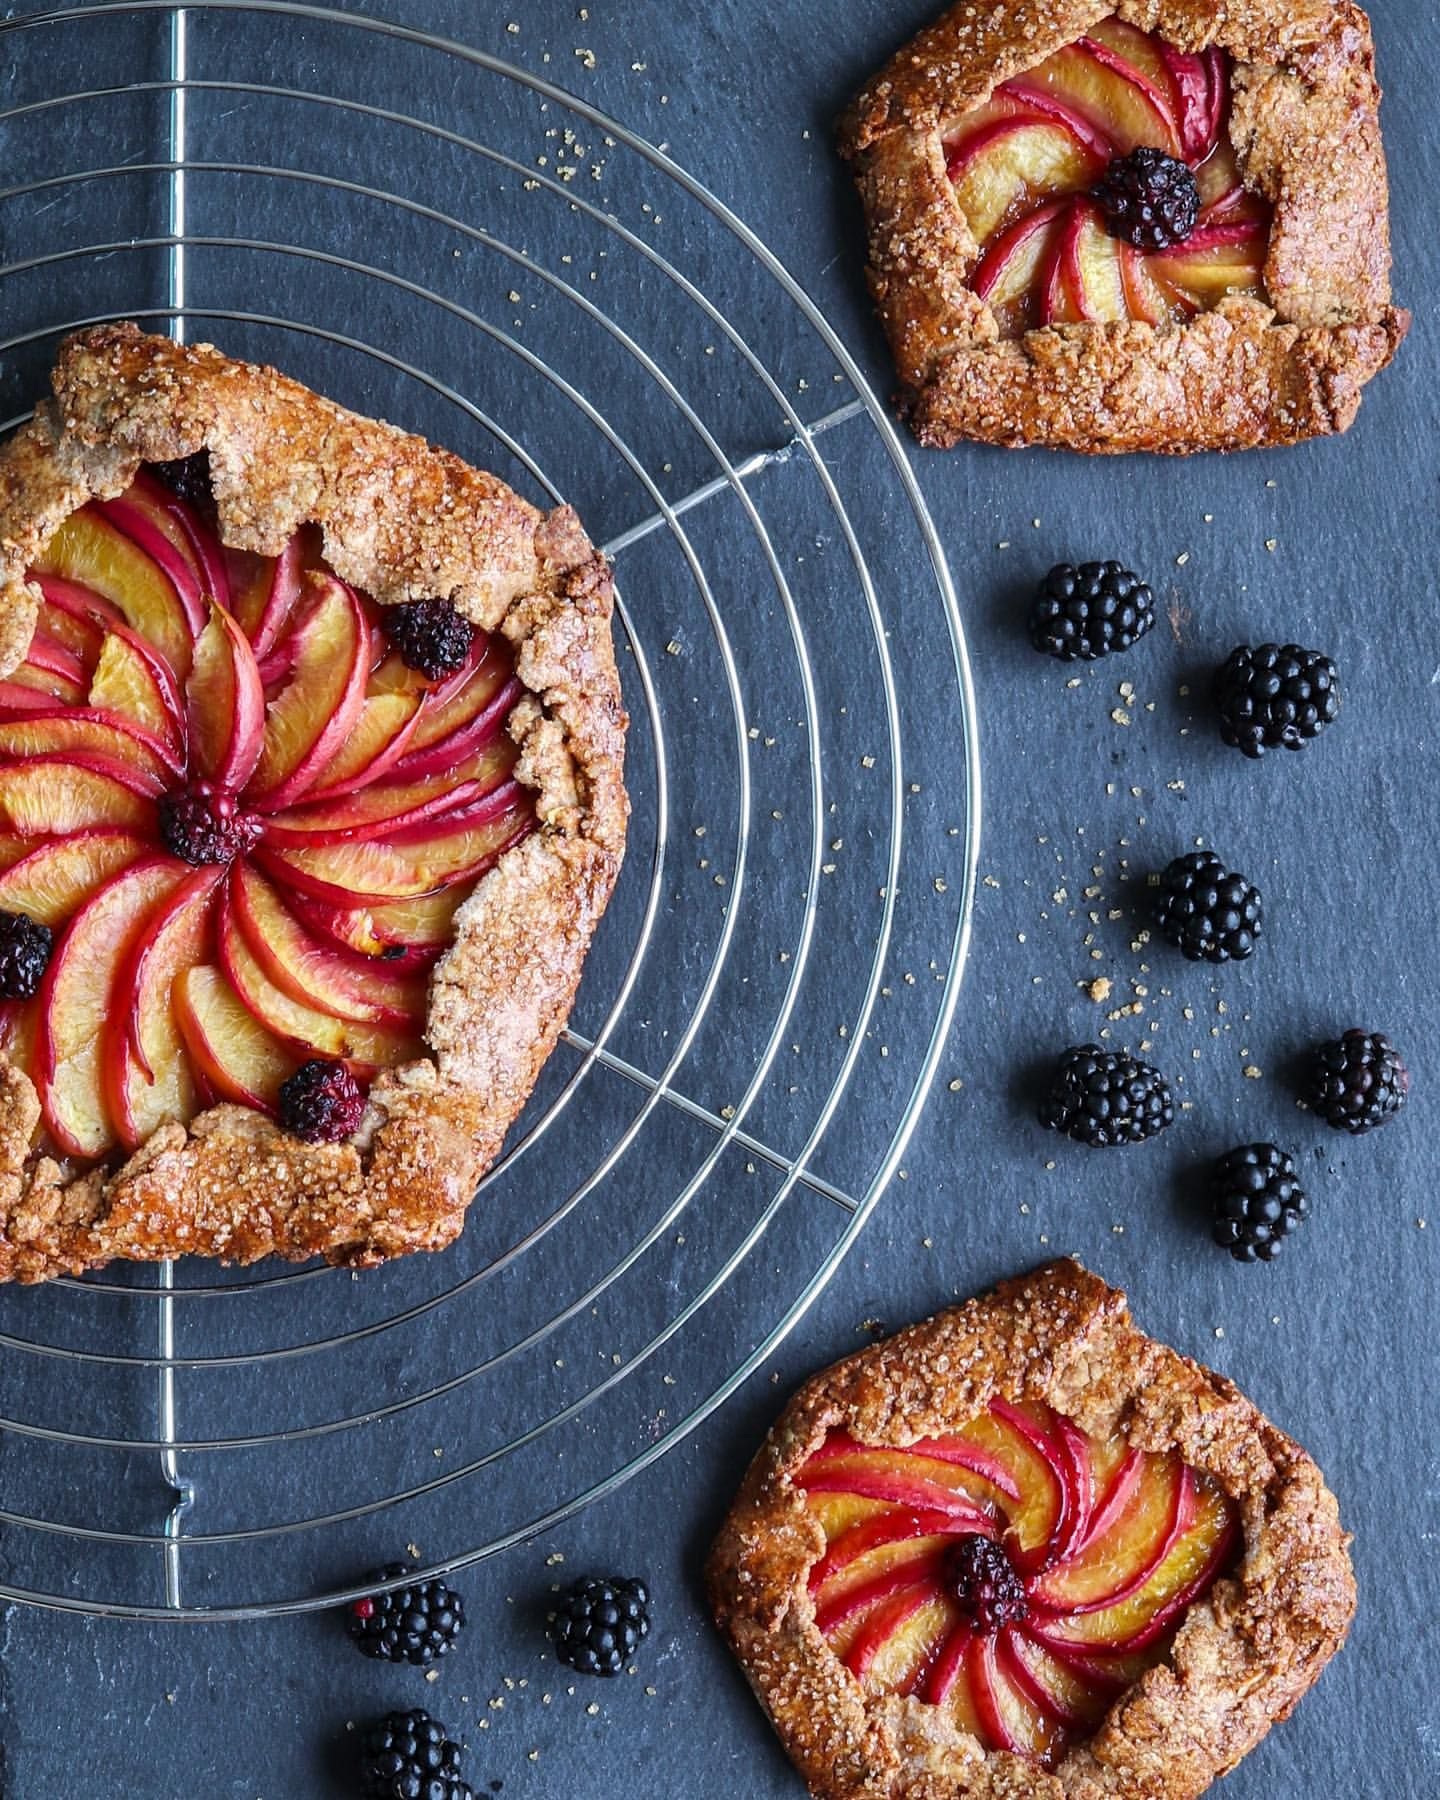 Blackberry Peach Galette with Almond Crust